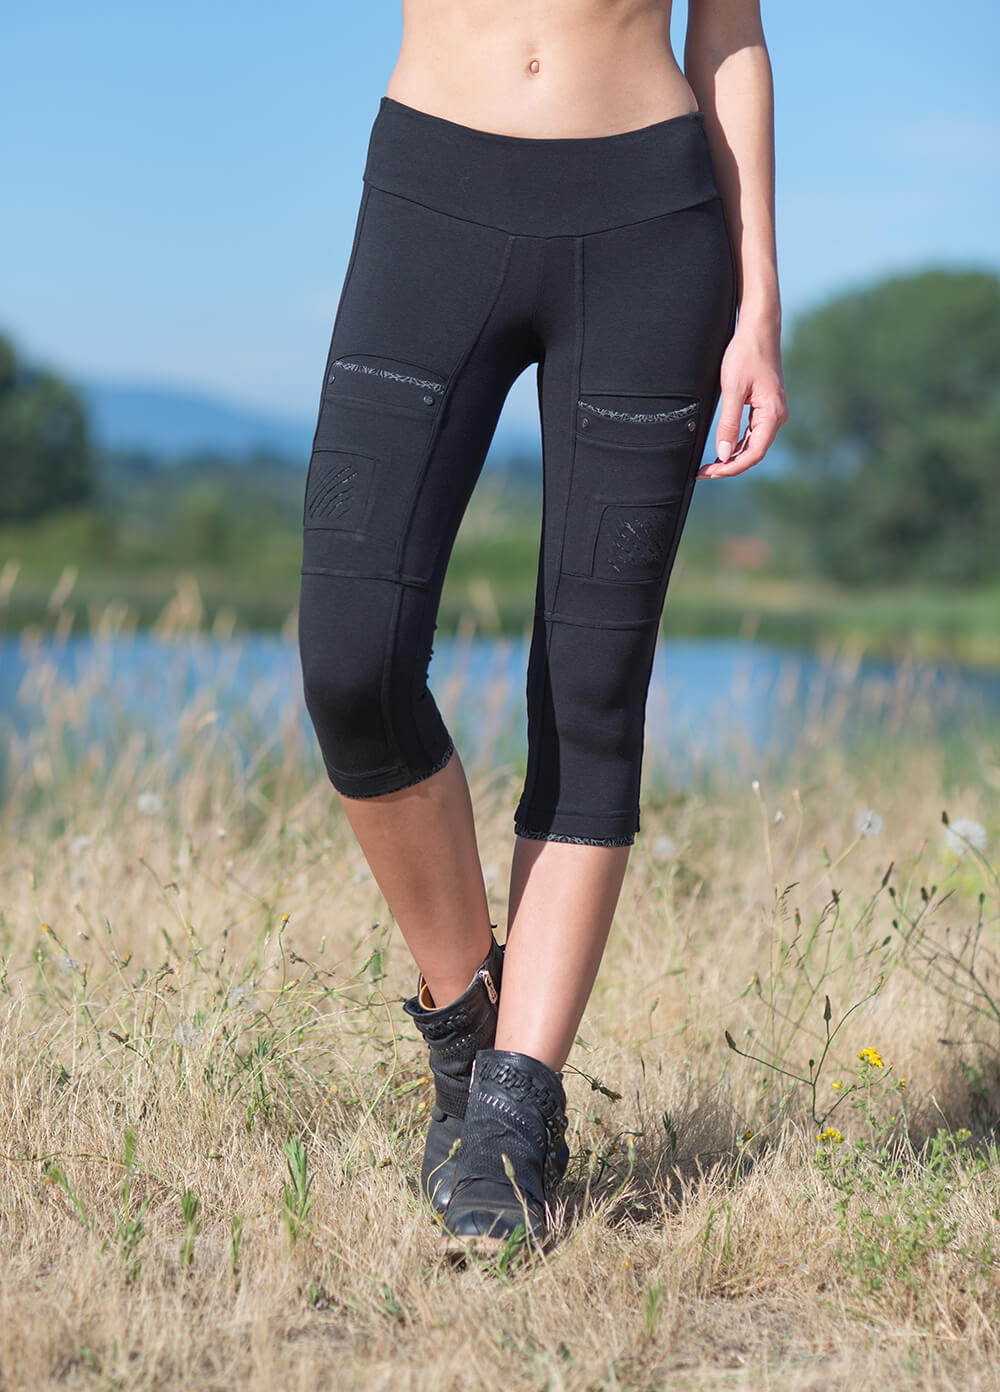 b06b749d7700b Organic cotton and bamboo 3/4 leggings with print showing thigh shreds and  pockets on